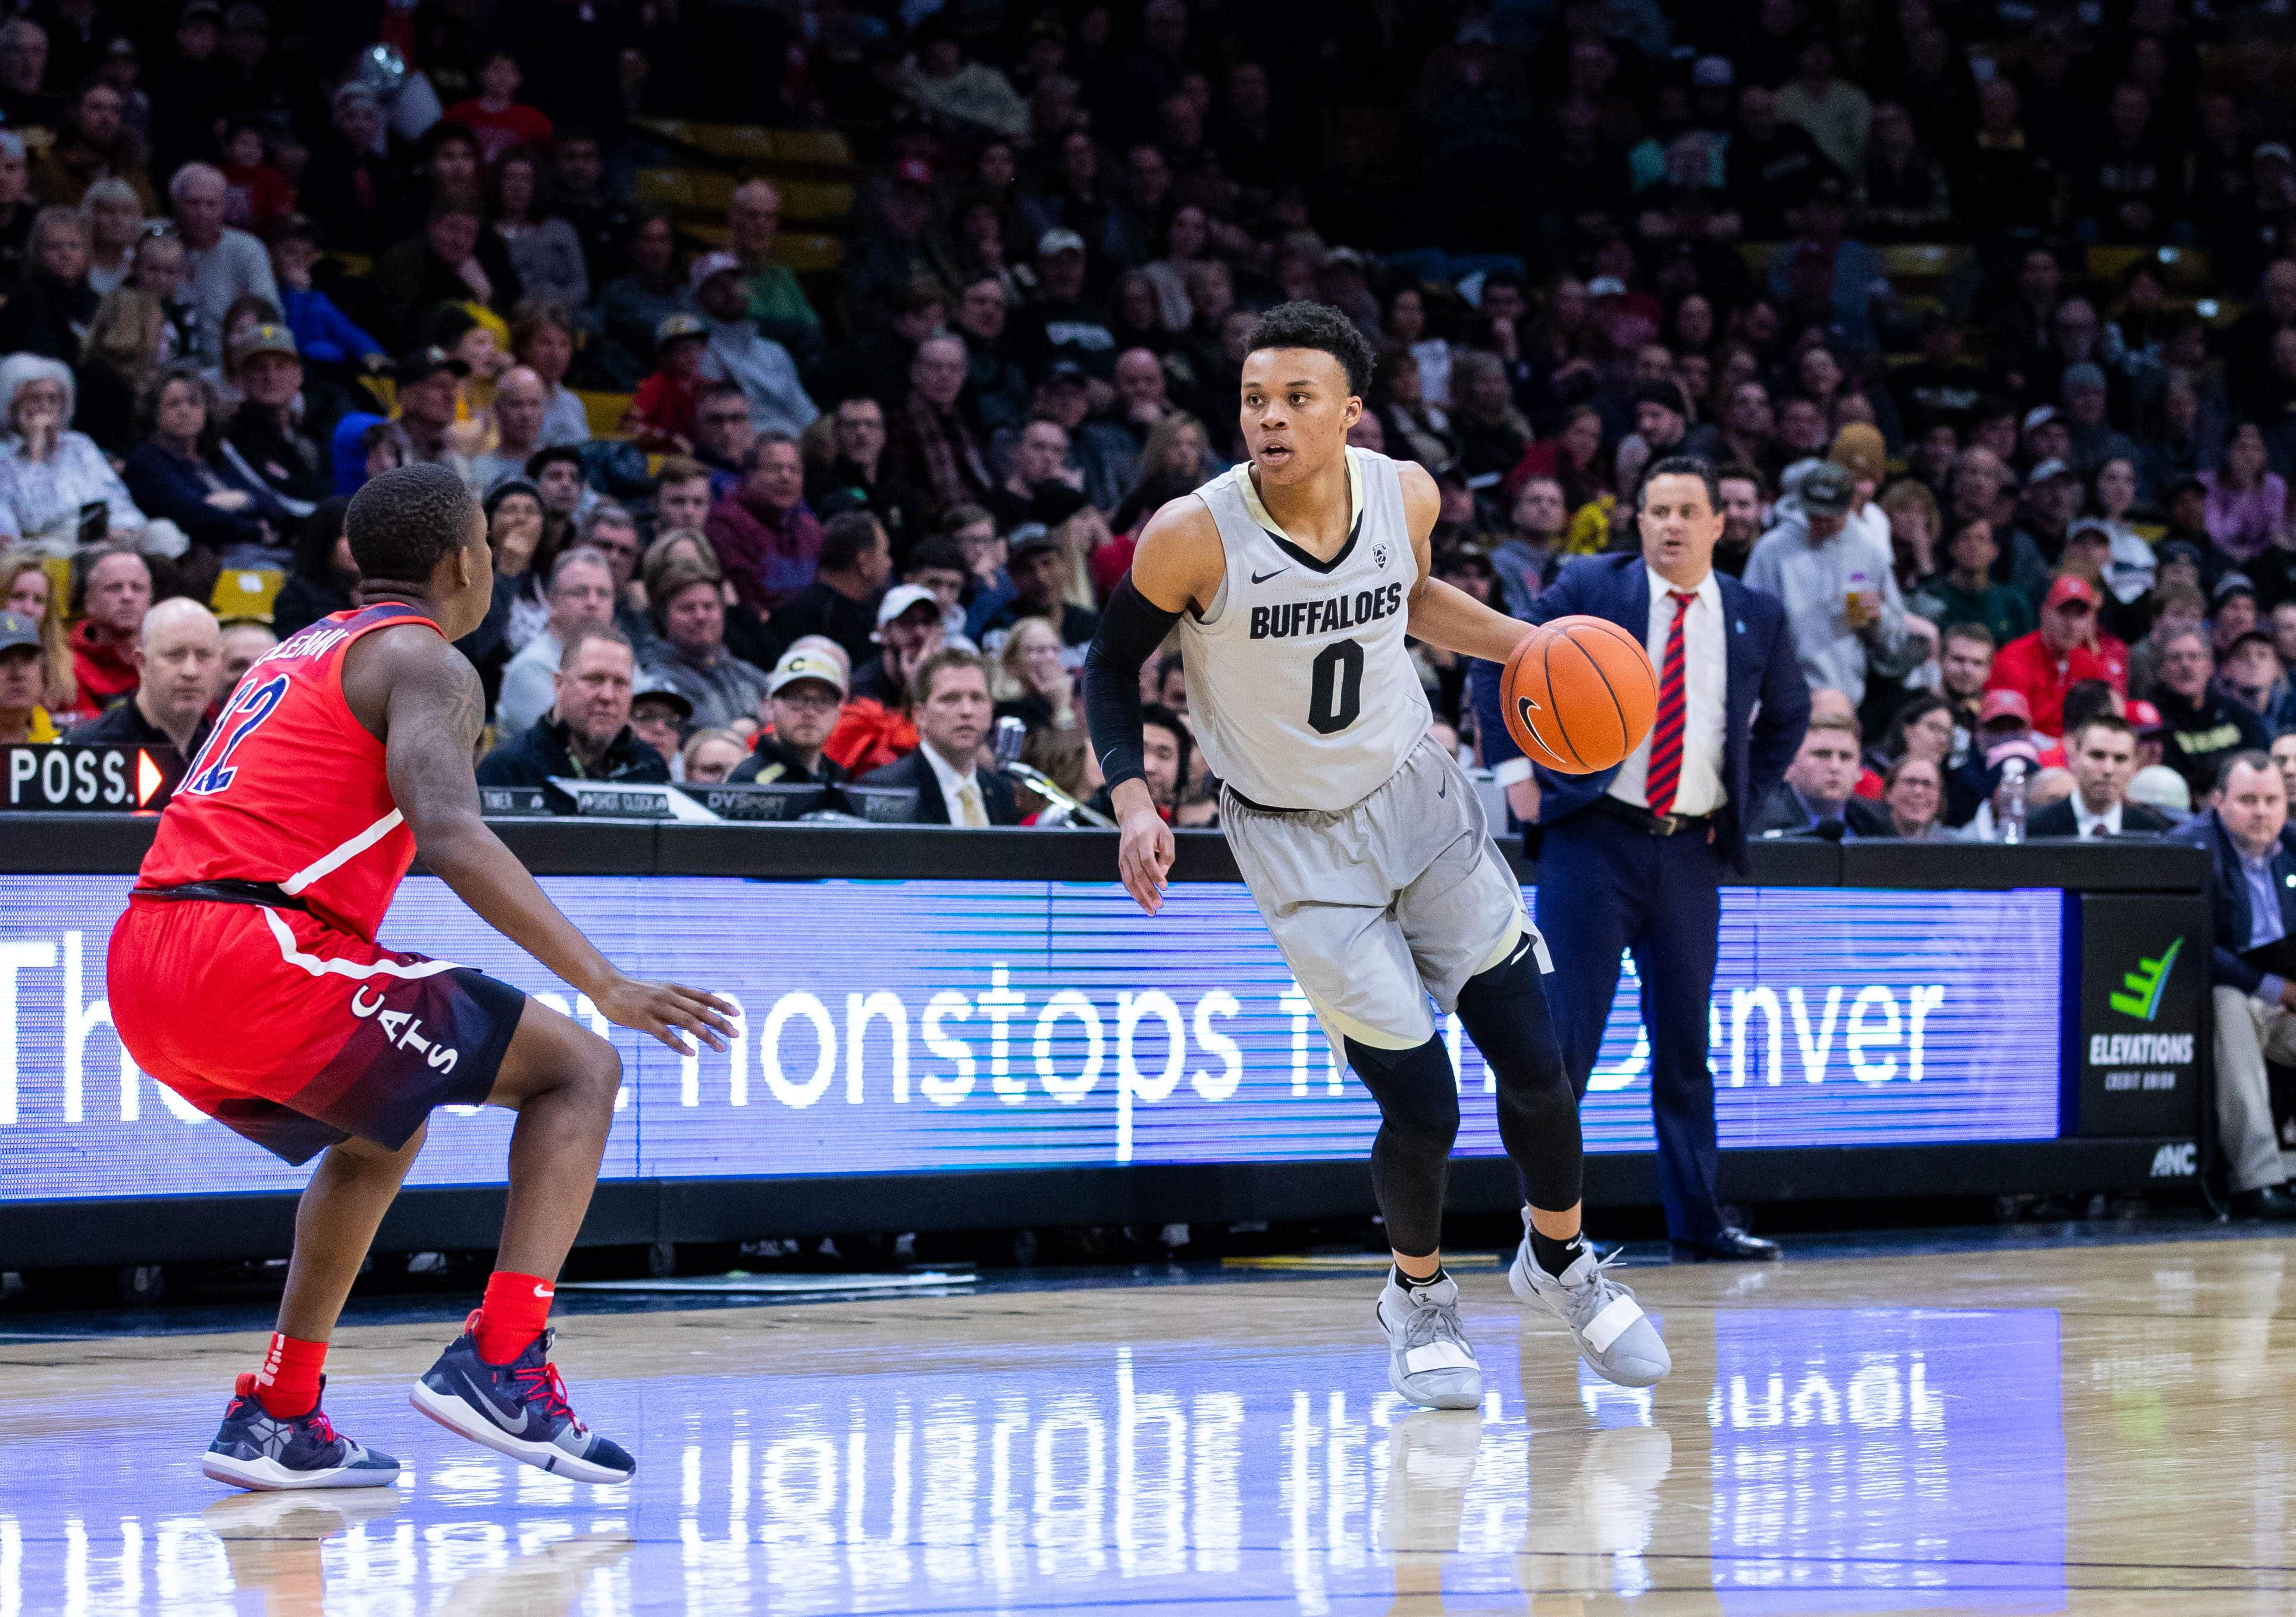 Buffaloes win their fifth straight, defeat Arizona, 67-60